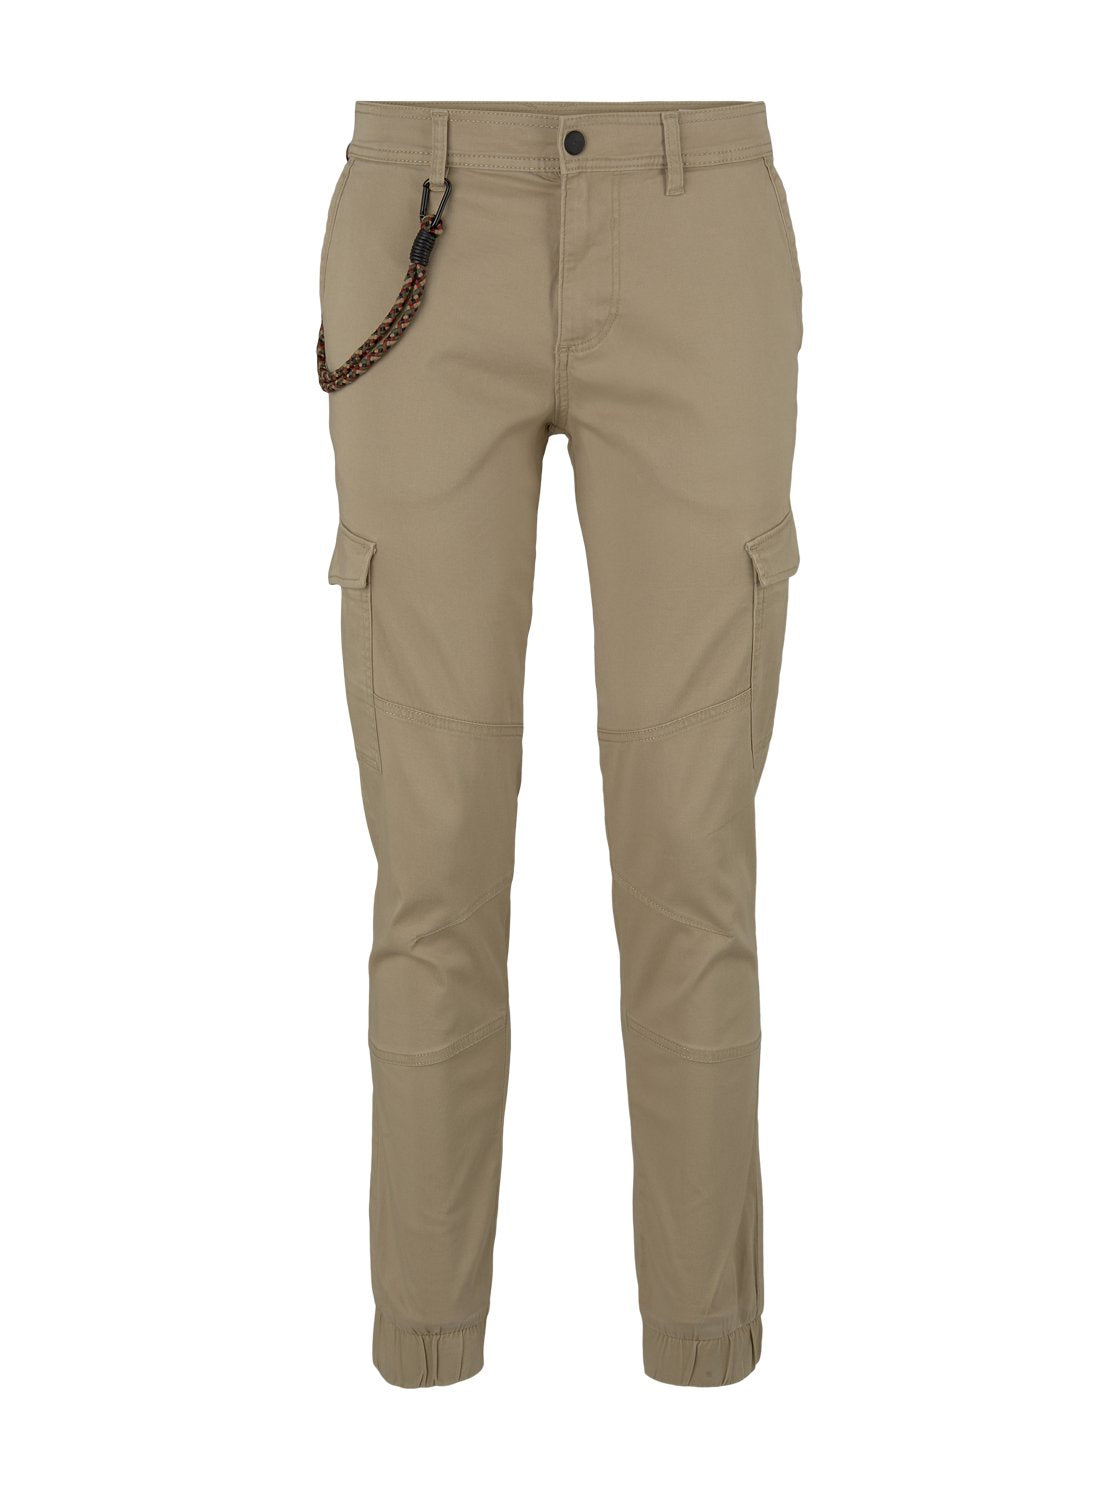 Tom Tailor men's cargo jogger 1020454 sand